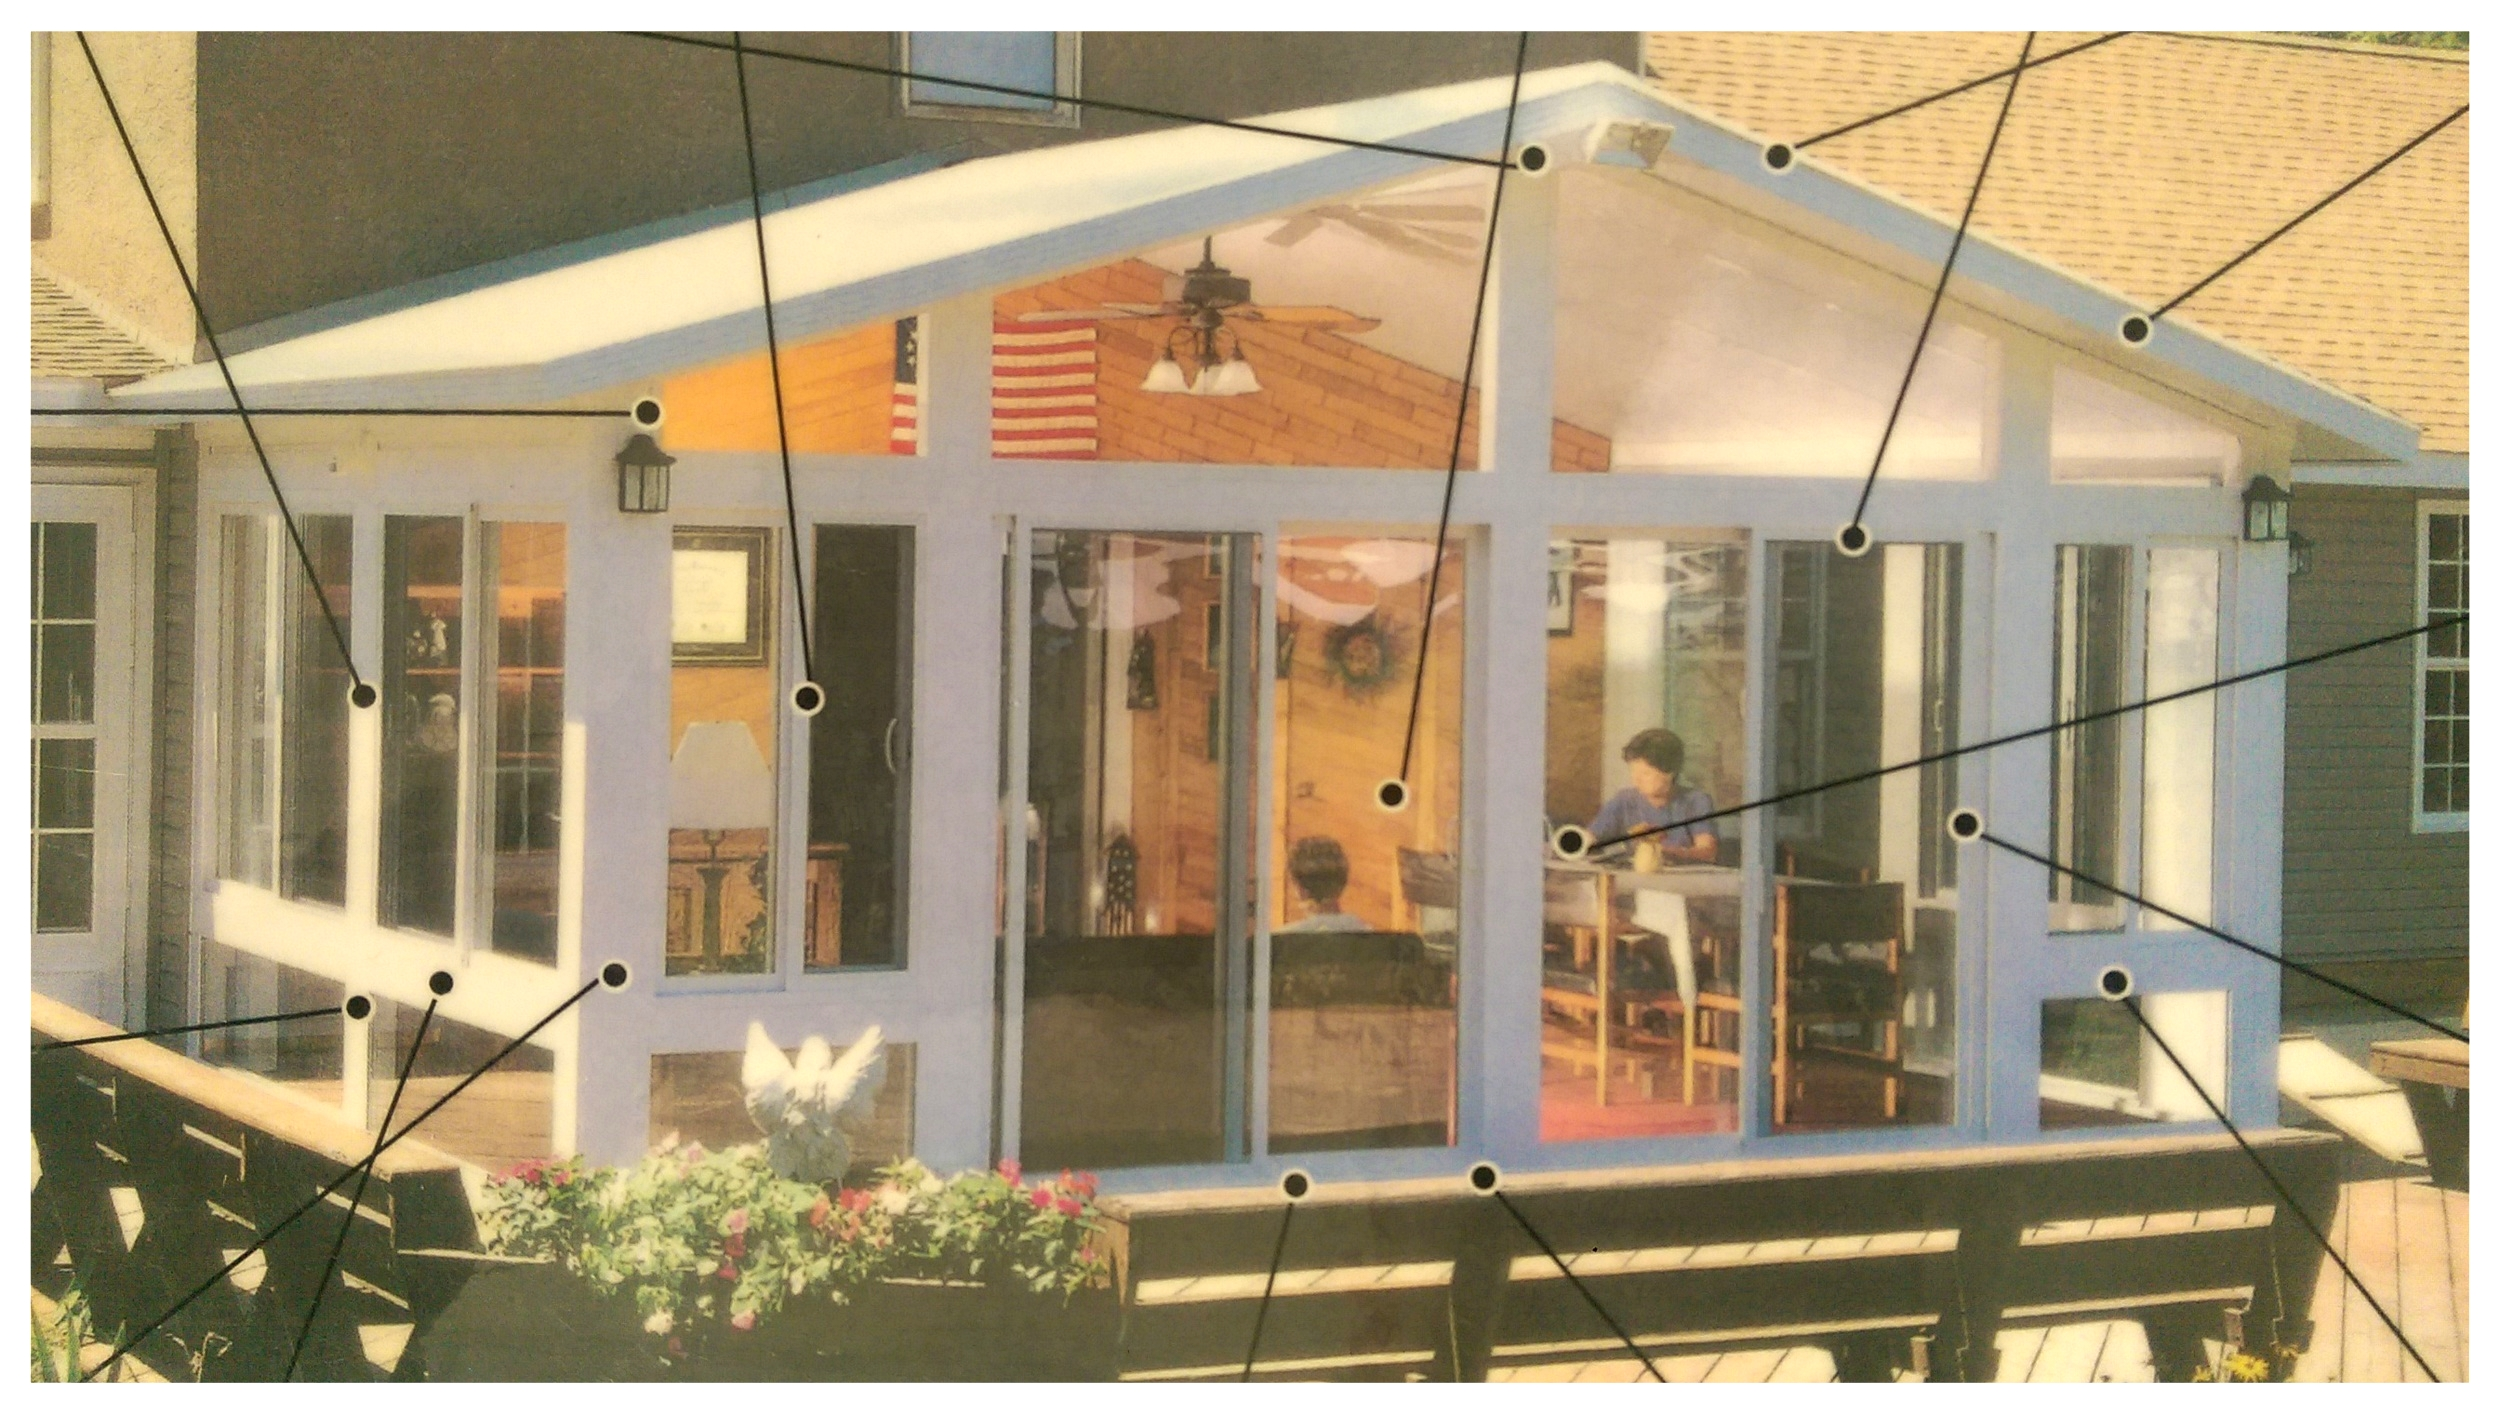 Betterliving year-round and 3-season sunroom components